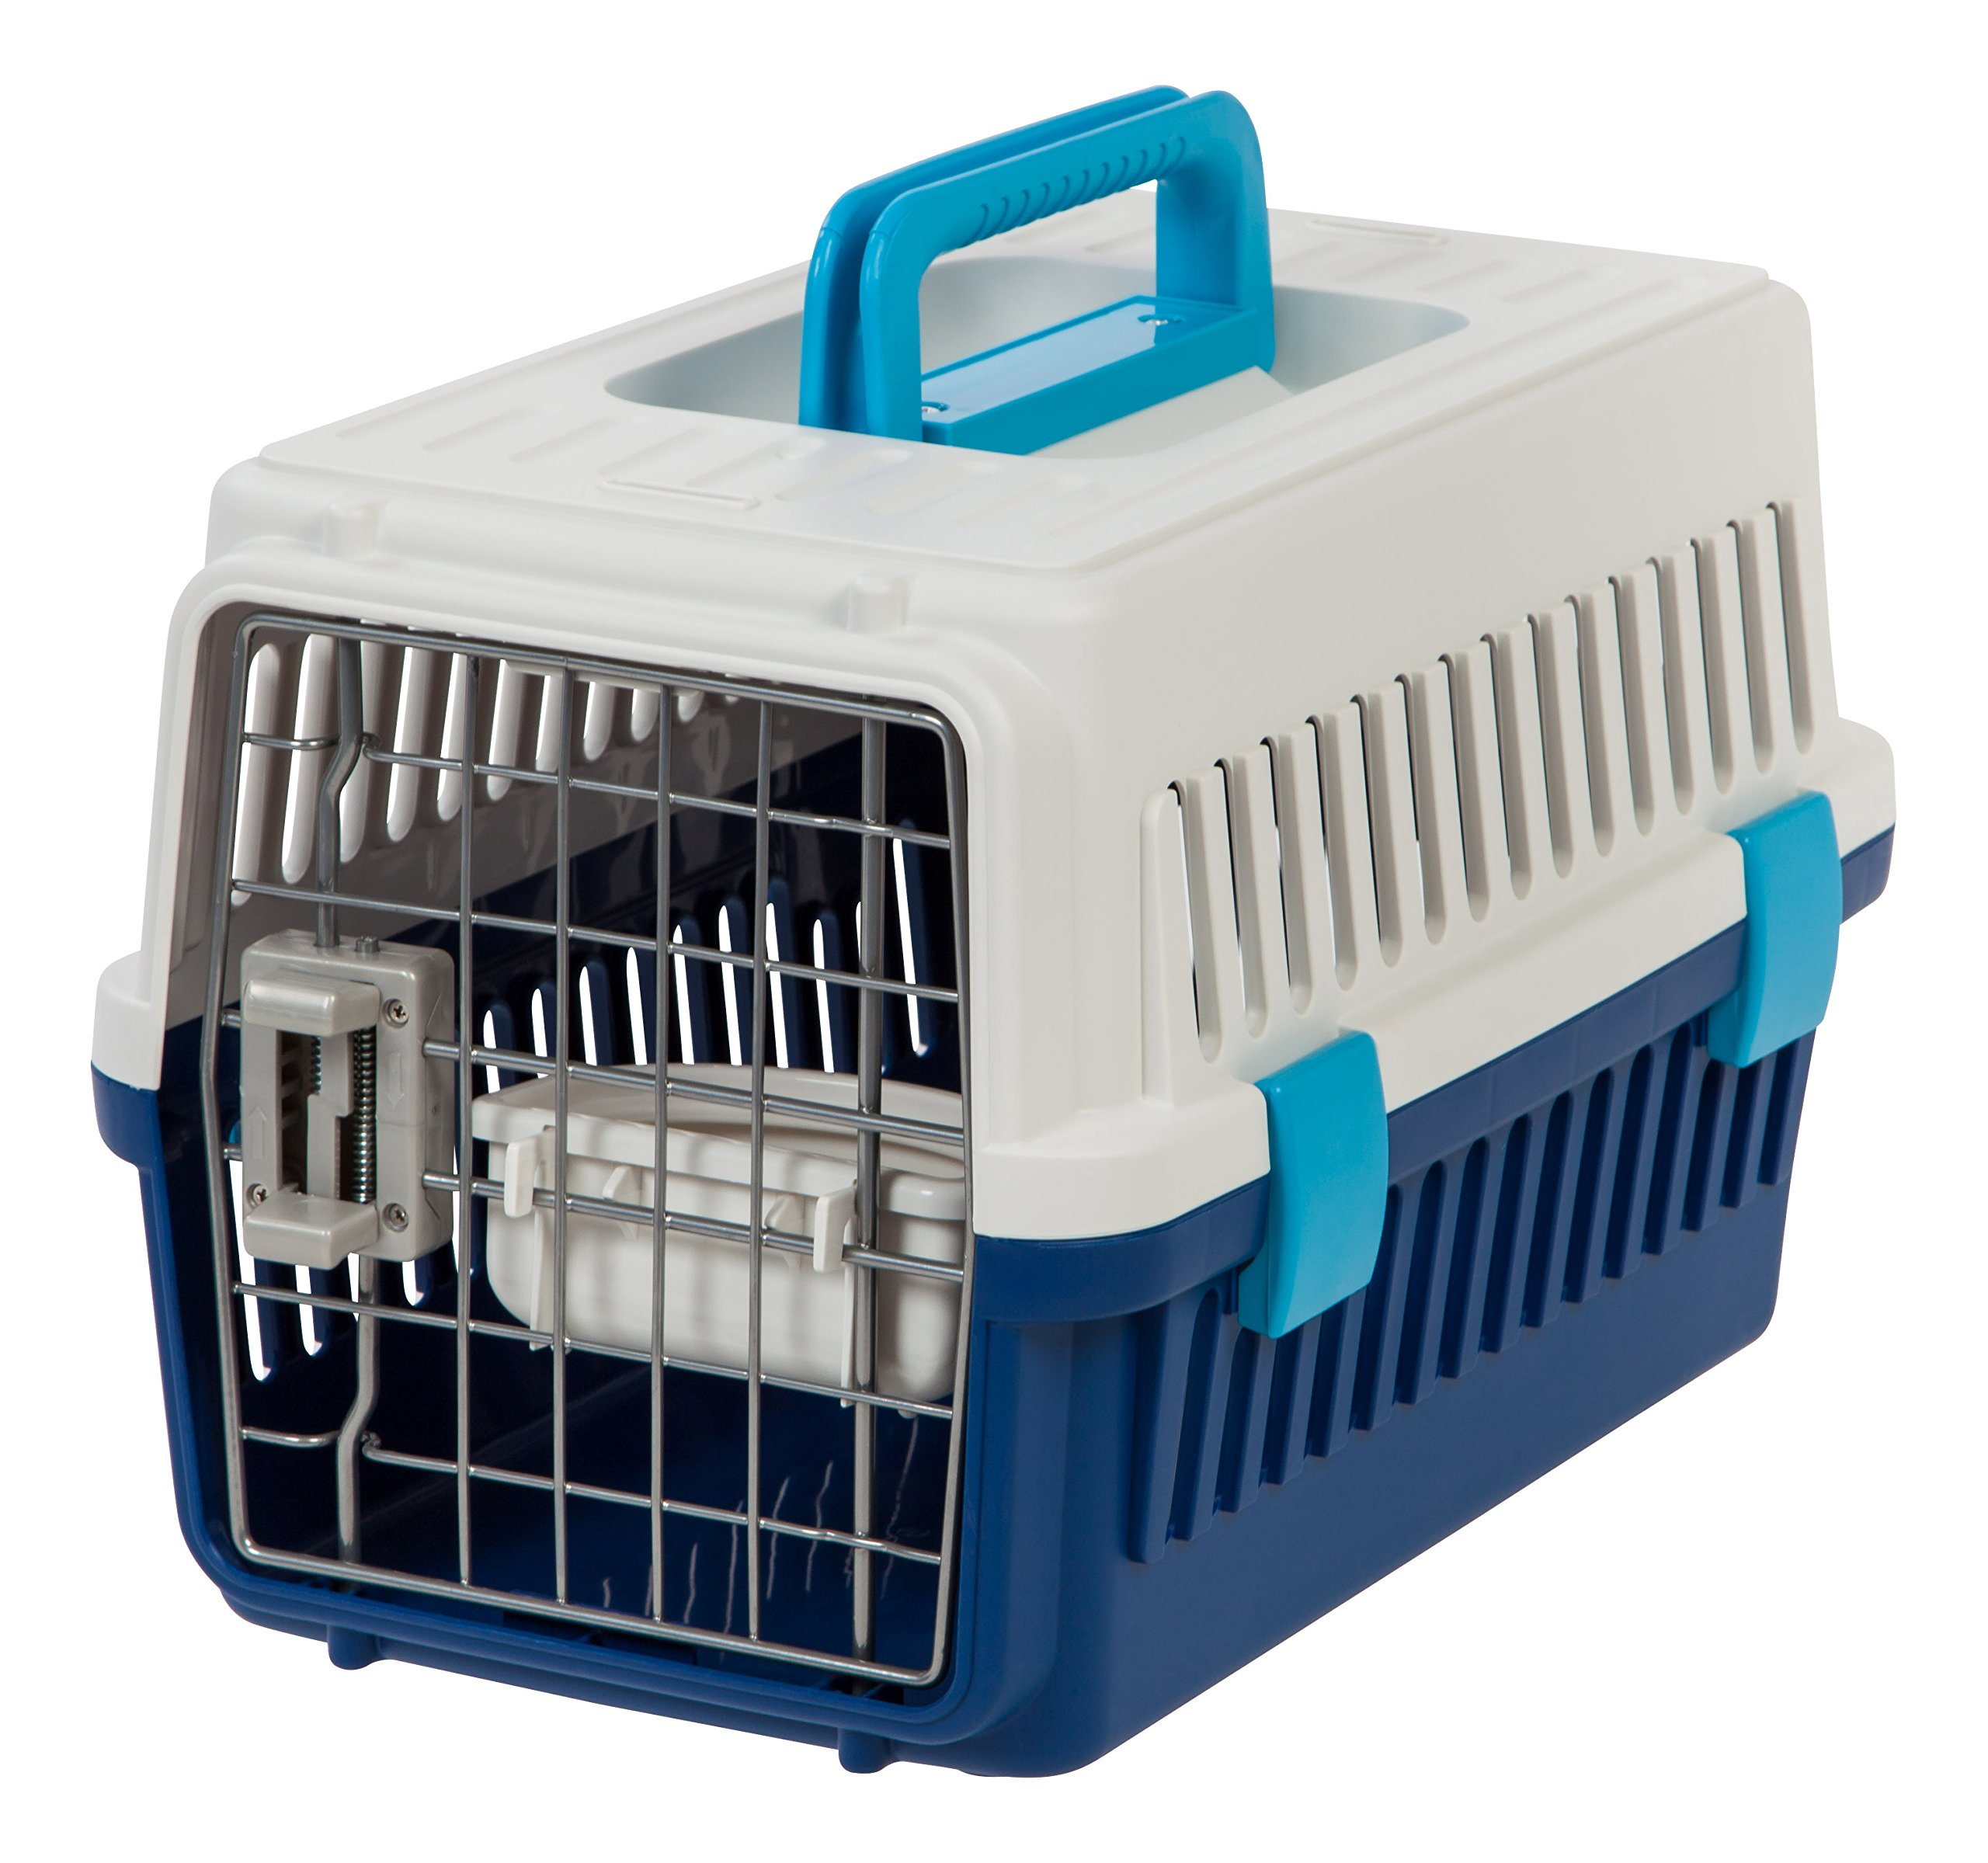 IRIS Extra Small Deluxe Pet Travel Carrier, Navy